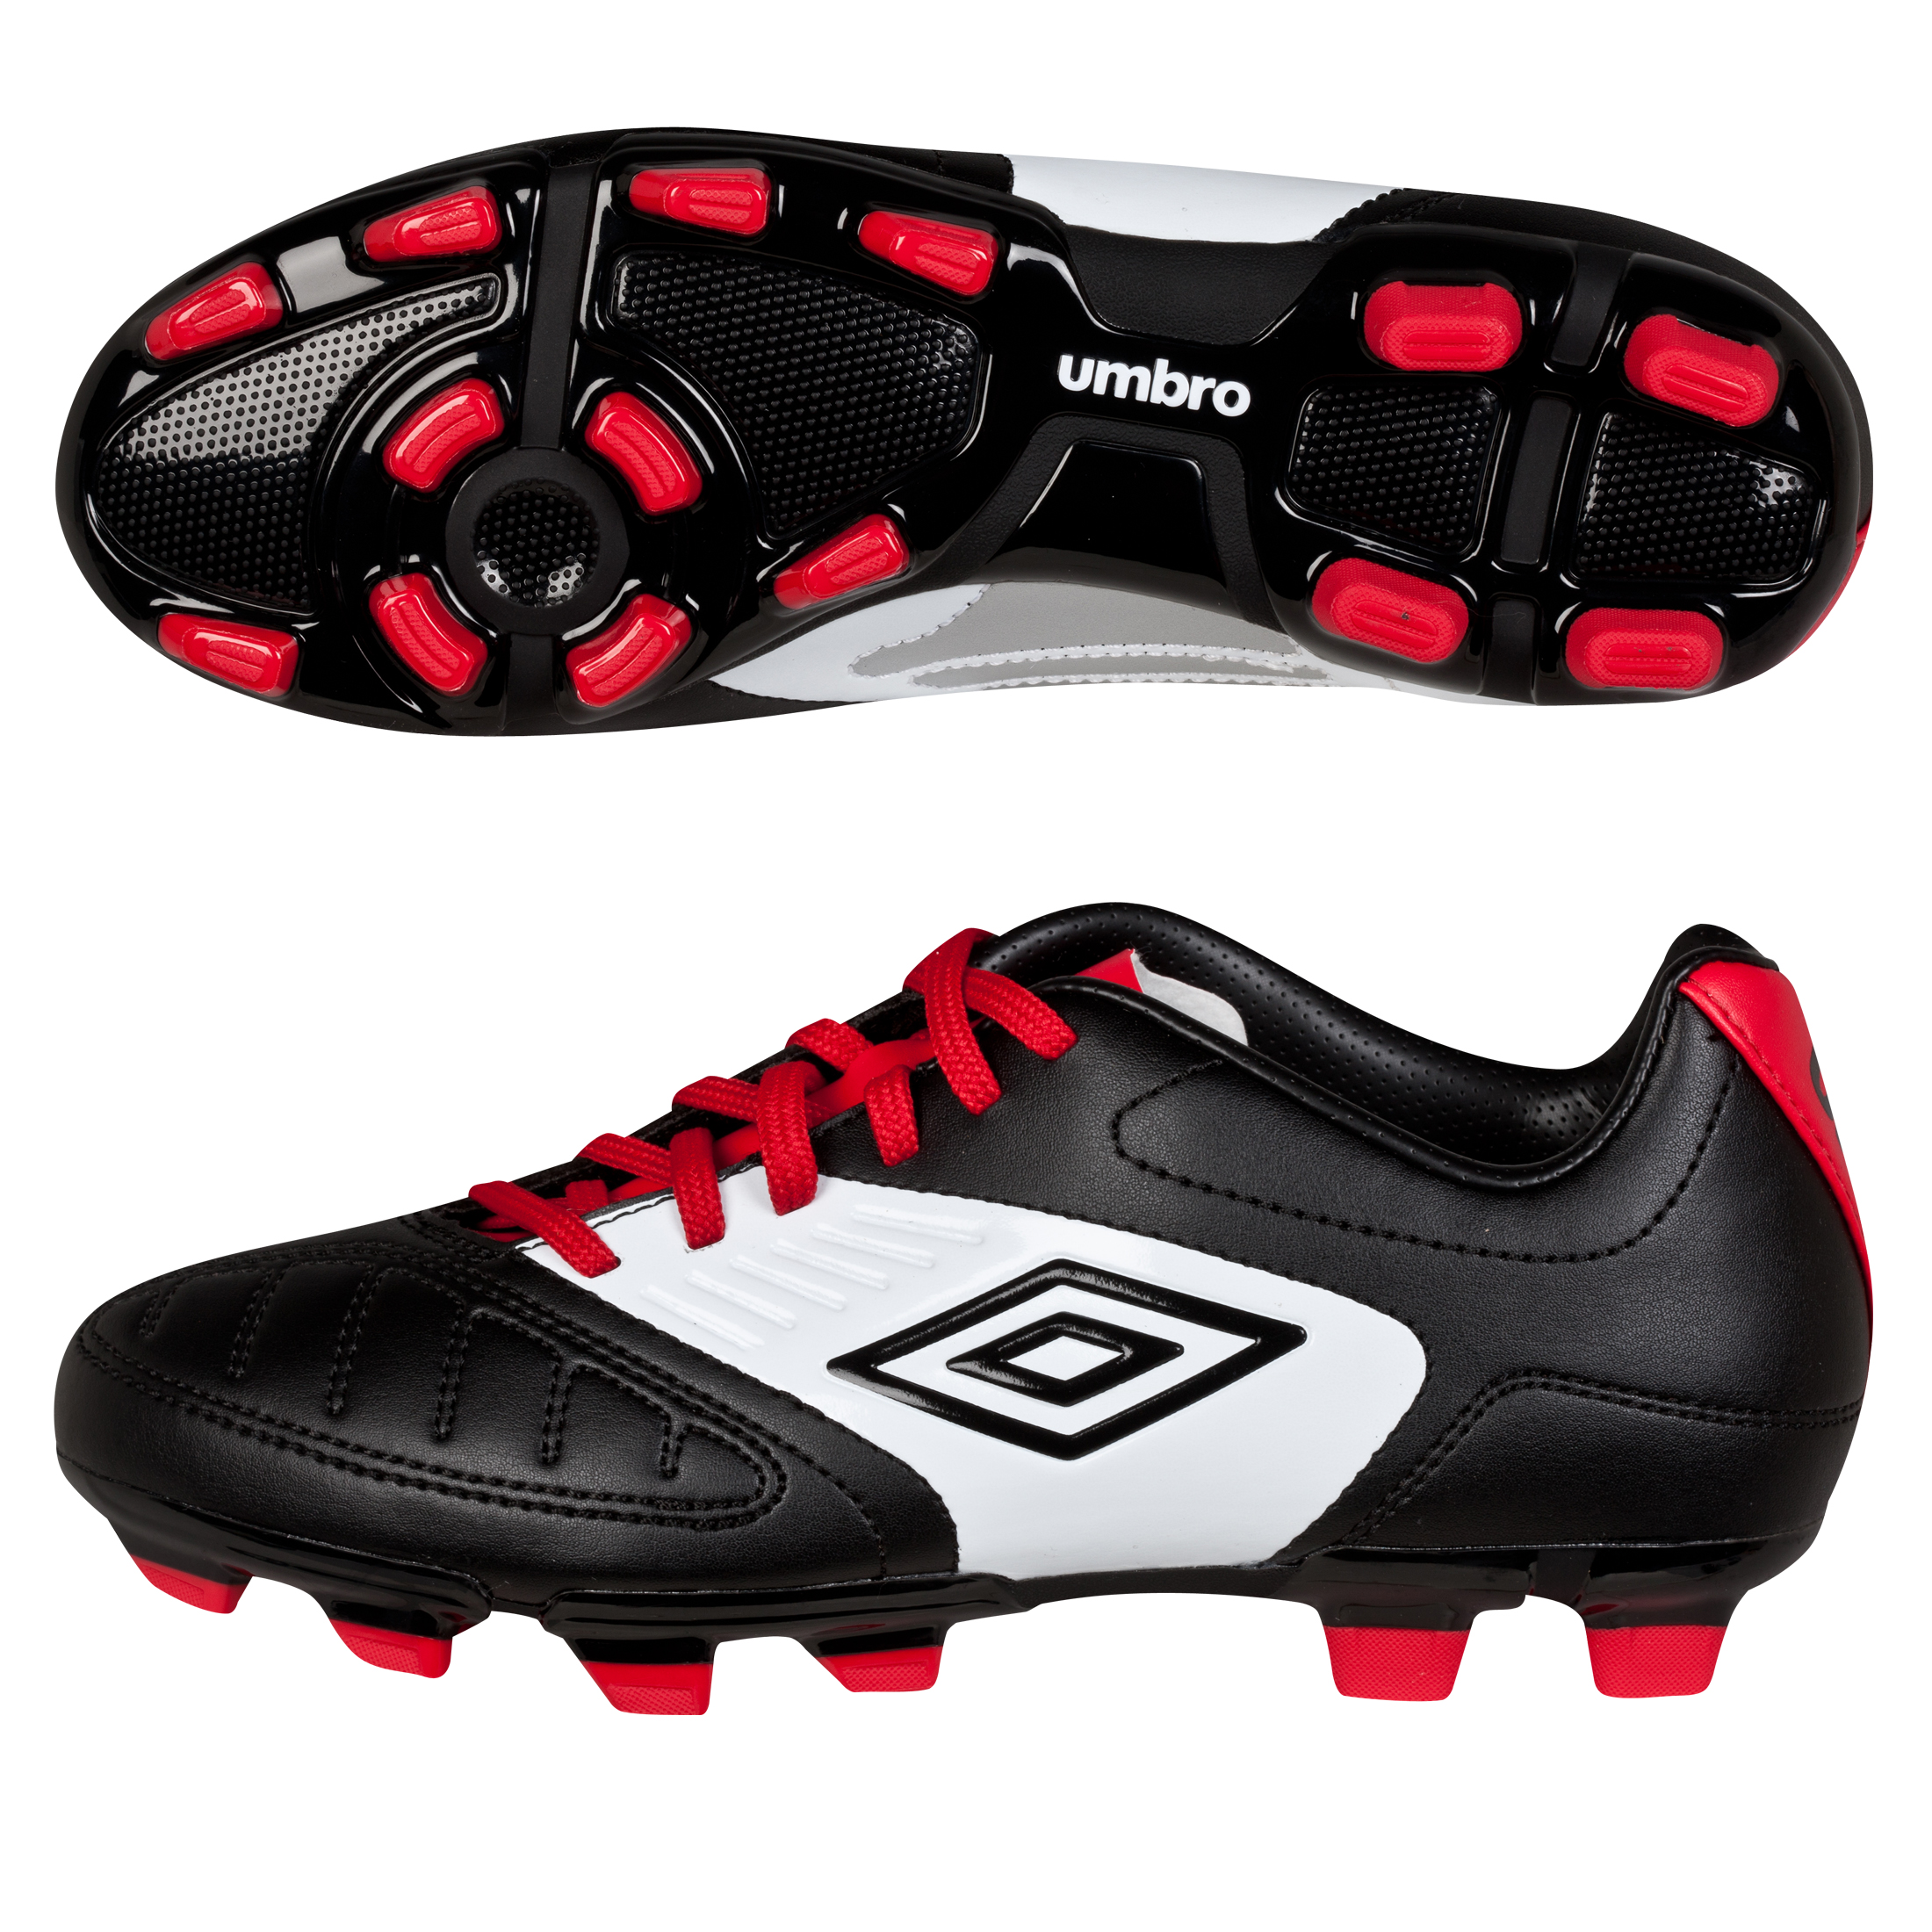 Umbro Geometra Cup Firm Ground Football Boots - Black/White/True Red - Kids